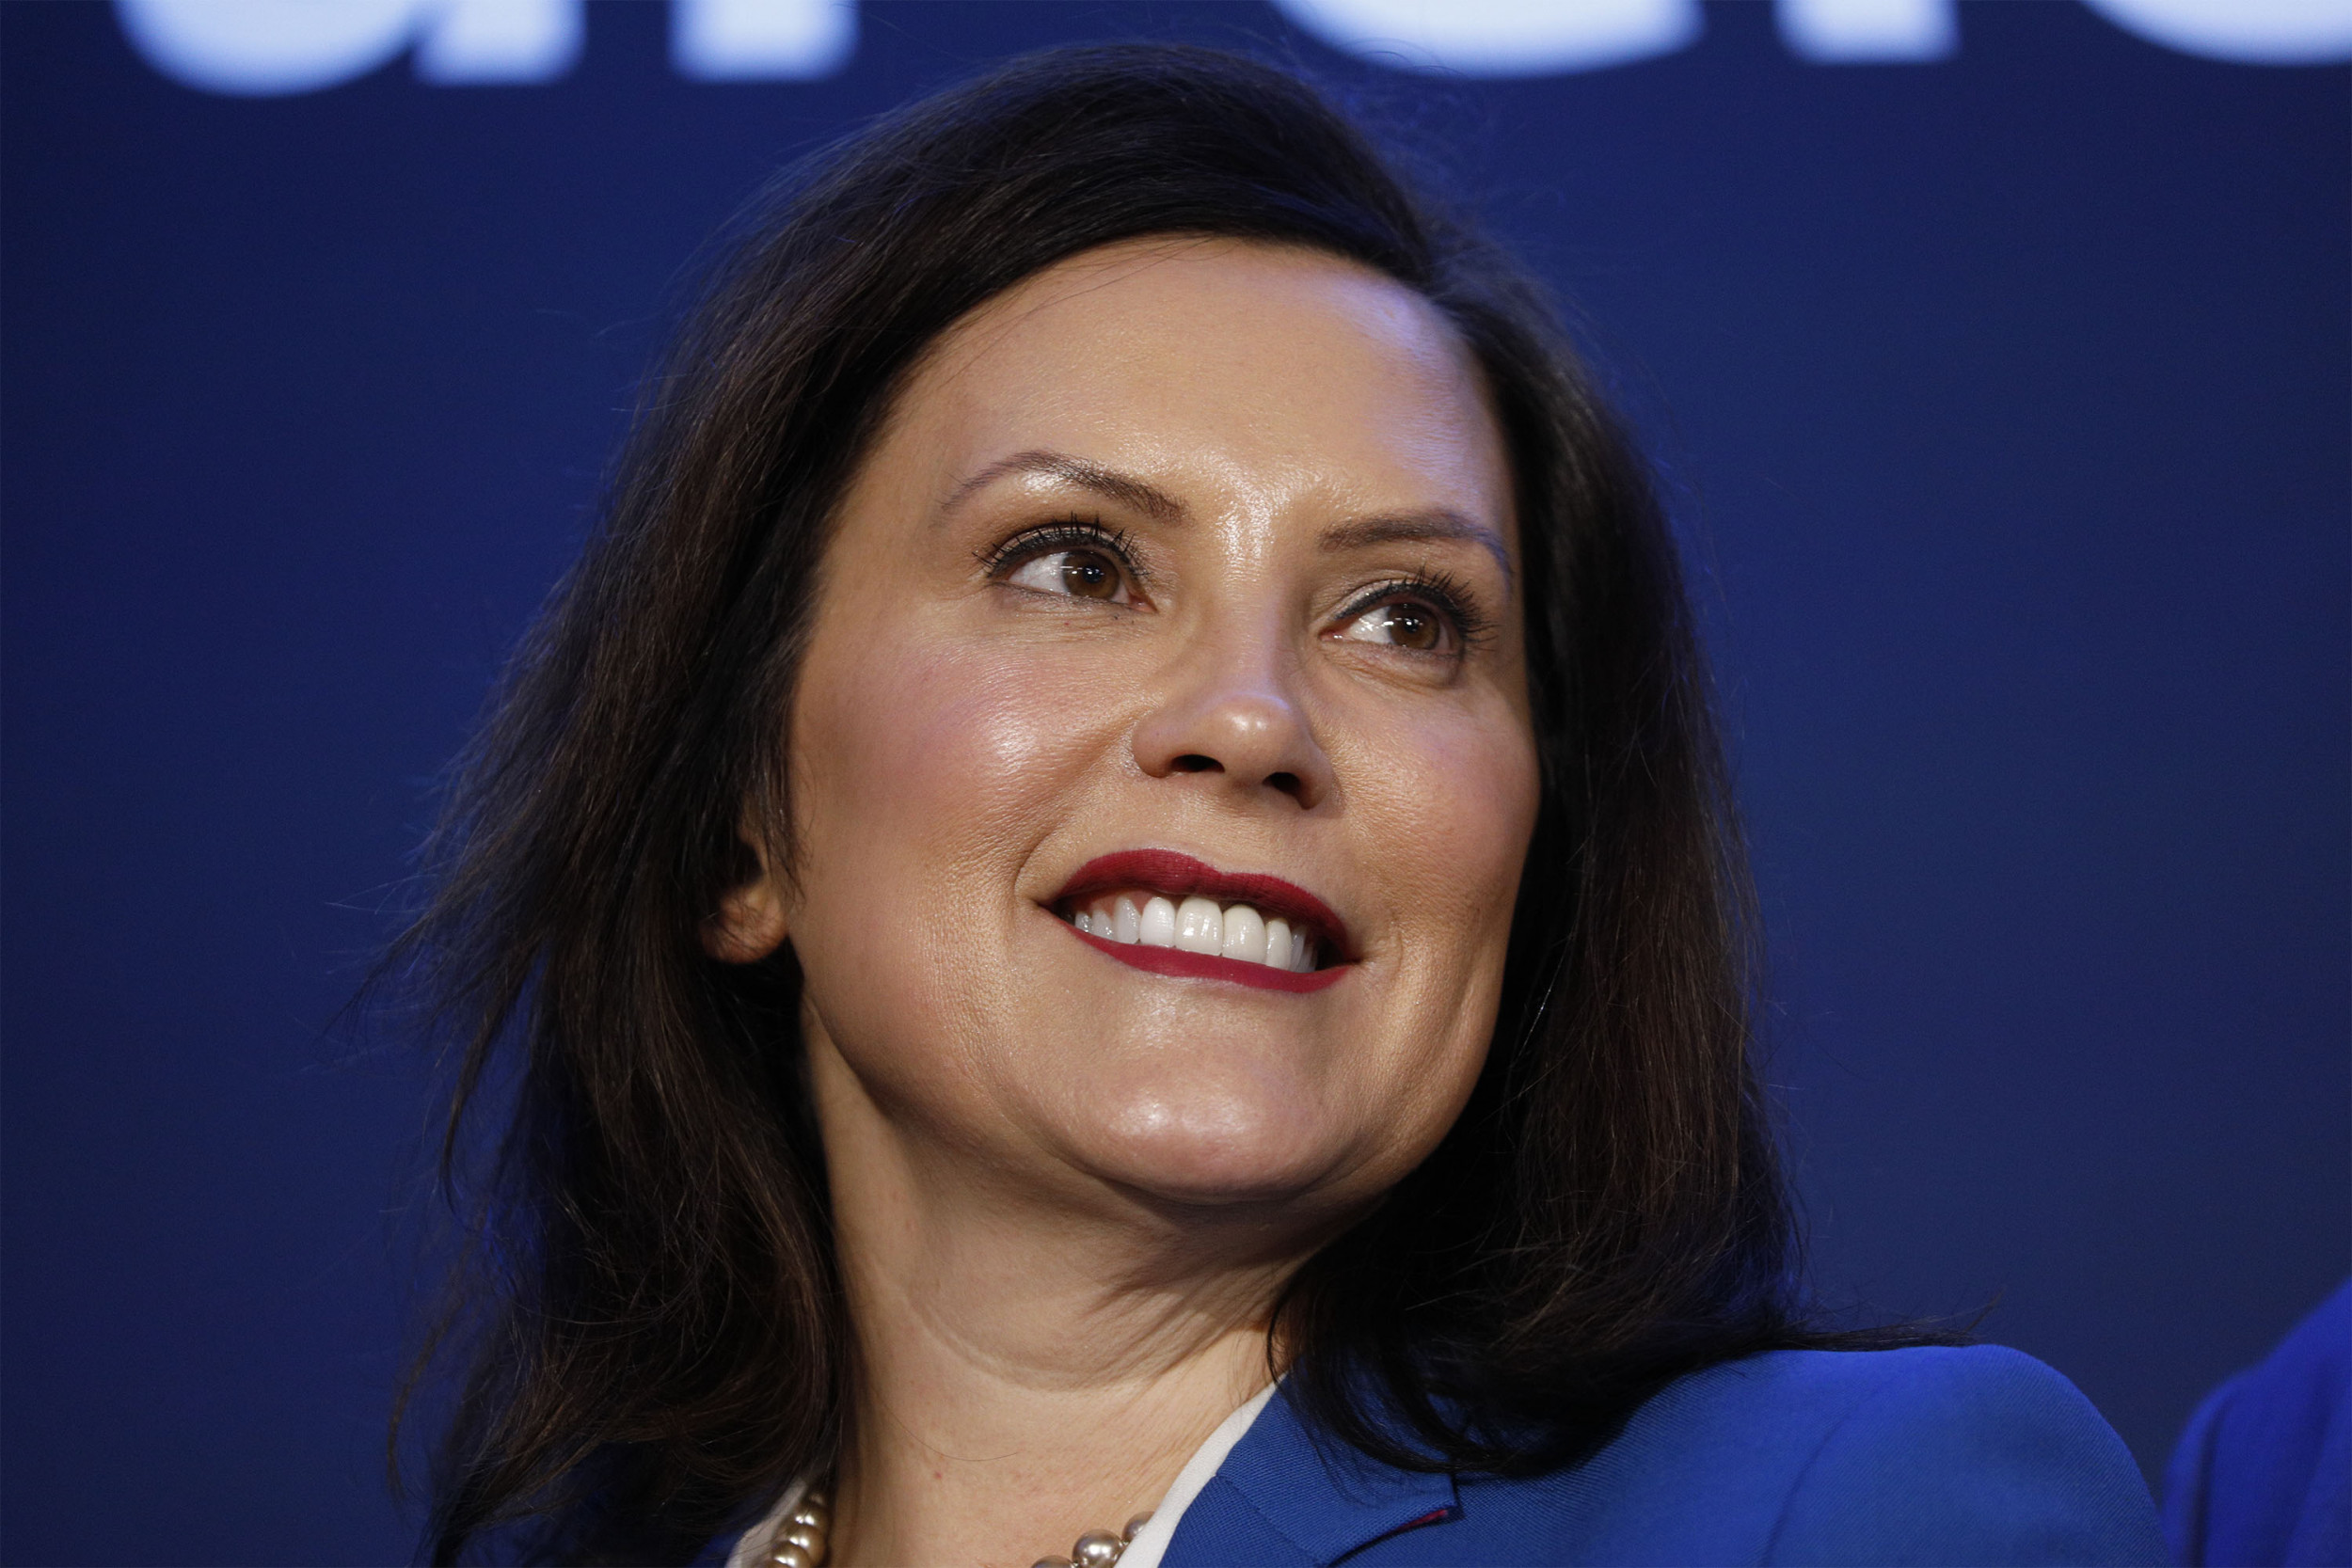 Michigan Governor Whitmer says a vaccine is needed before filling stadiums